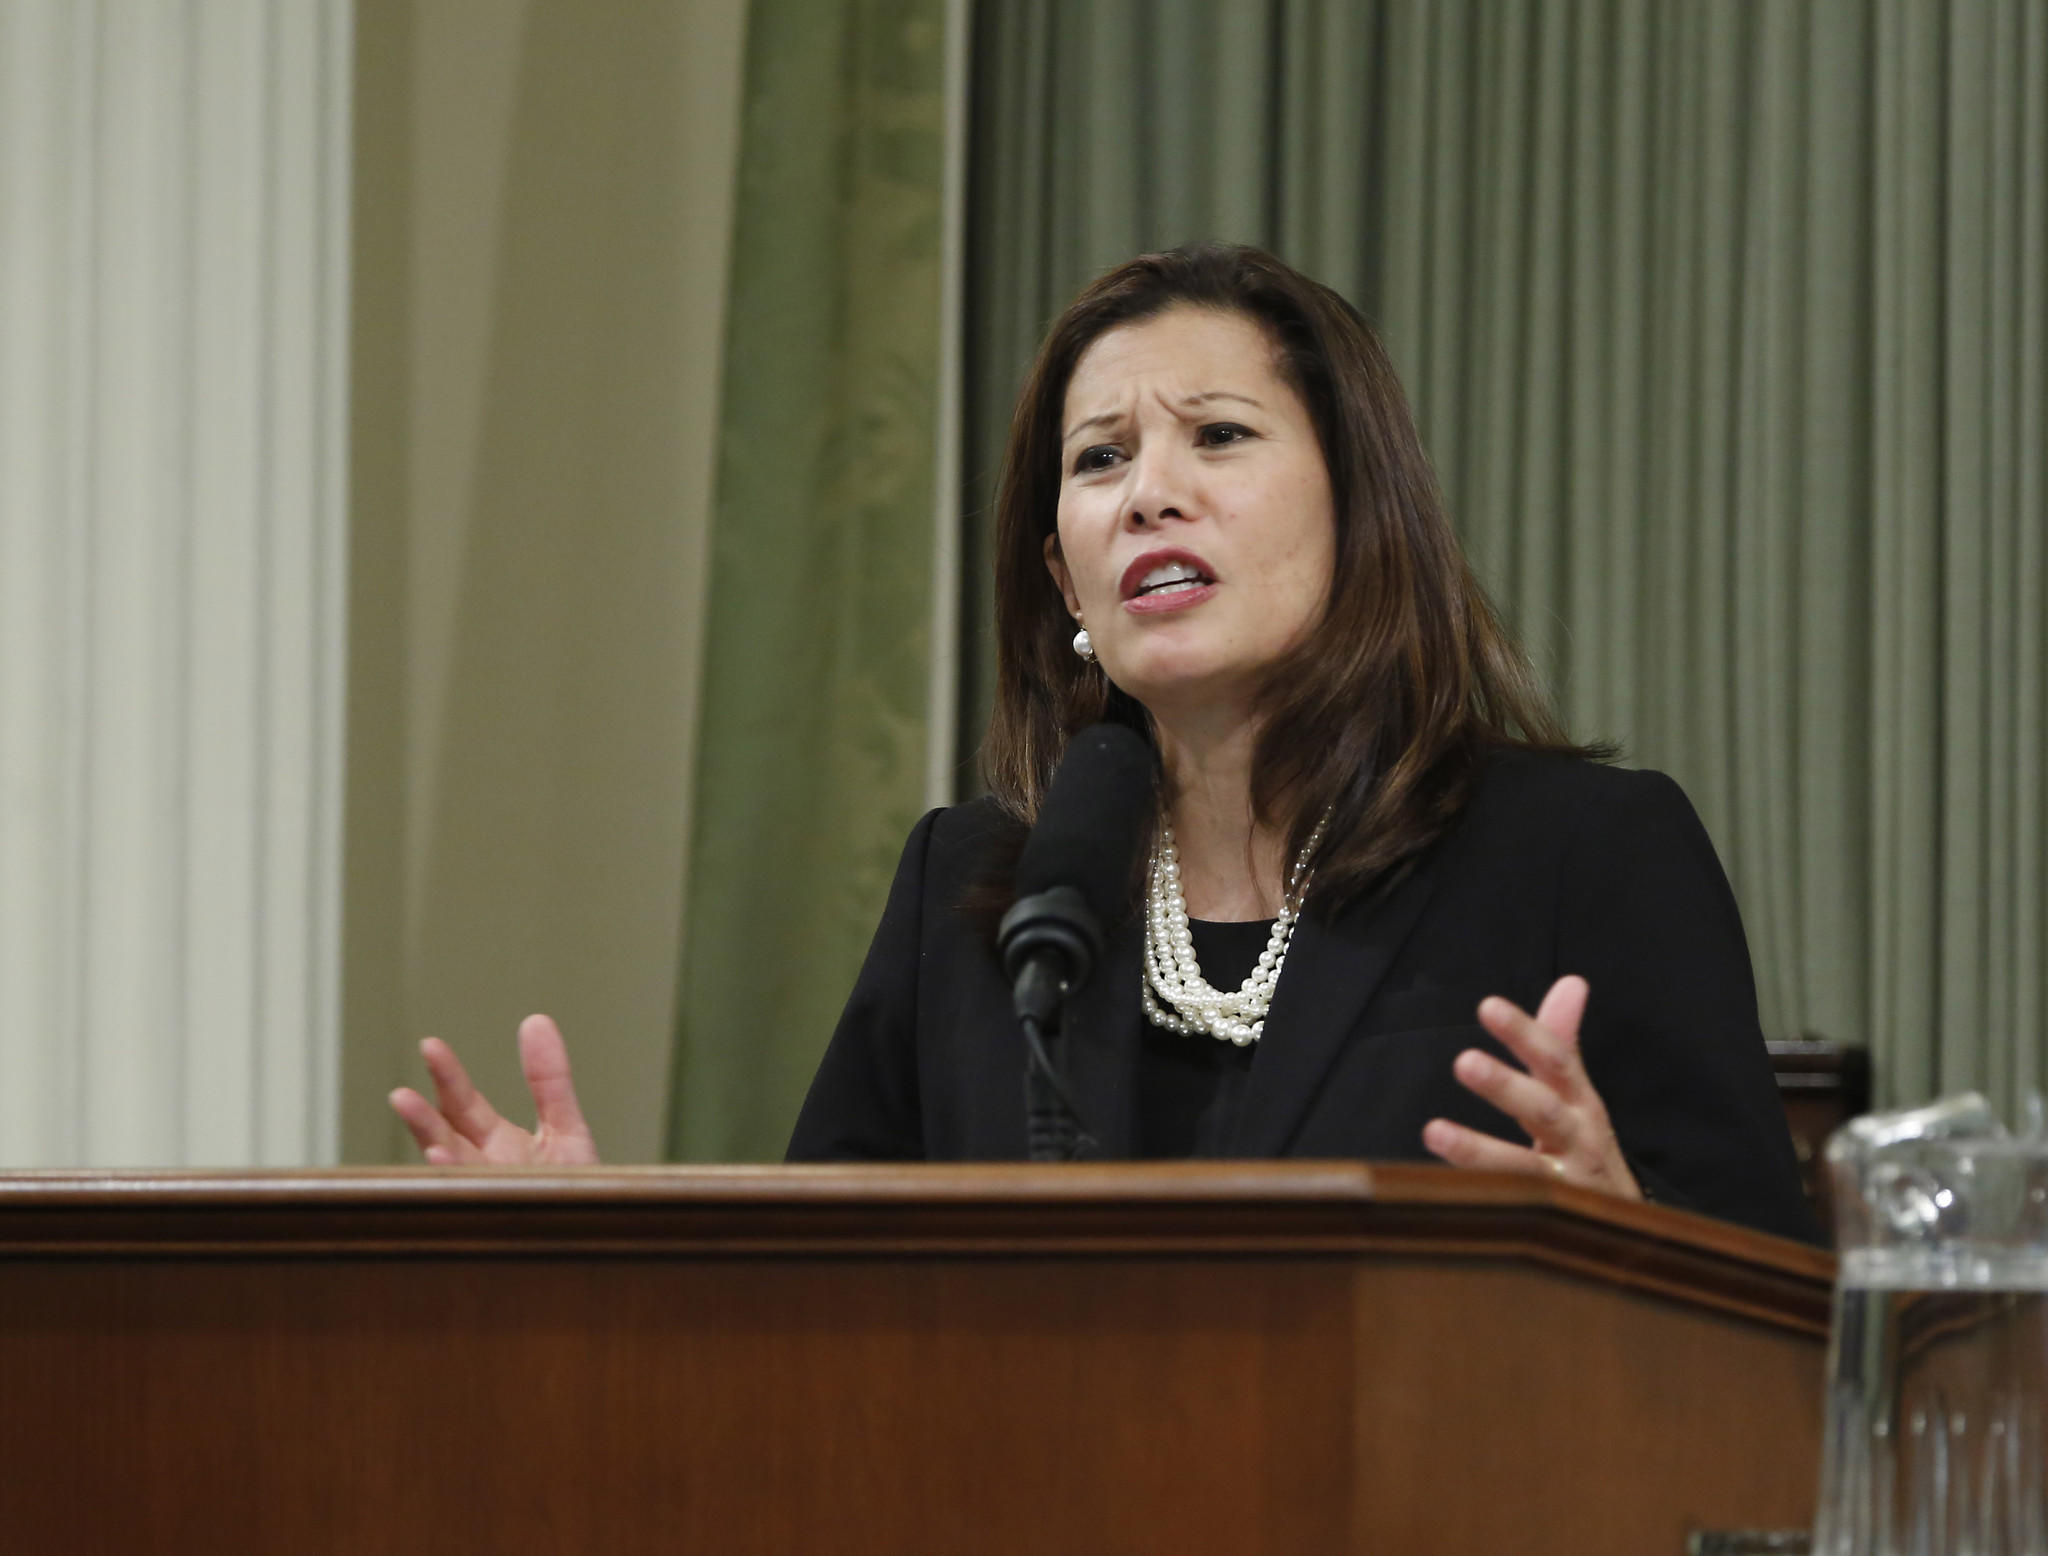 California Chief Justice Tani Cantil-Sakauye says the state's court system needs additional funding.